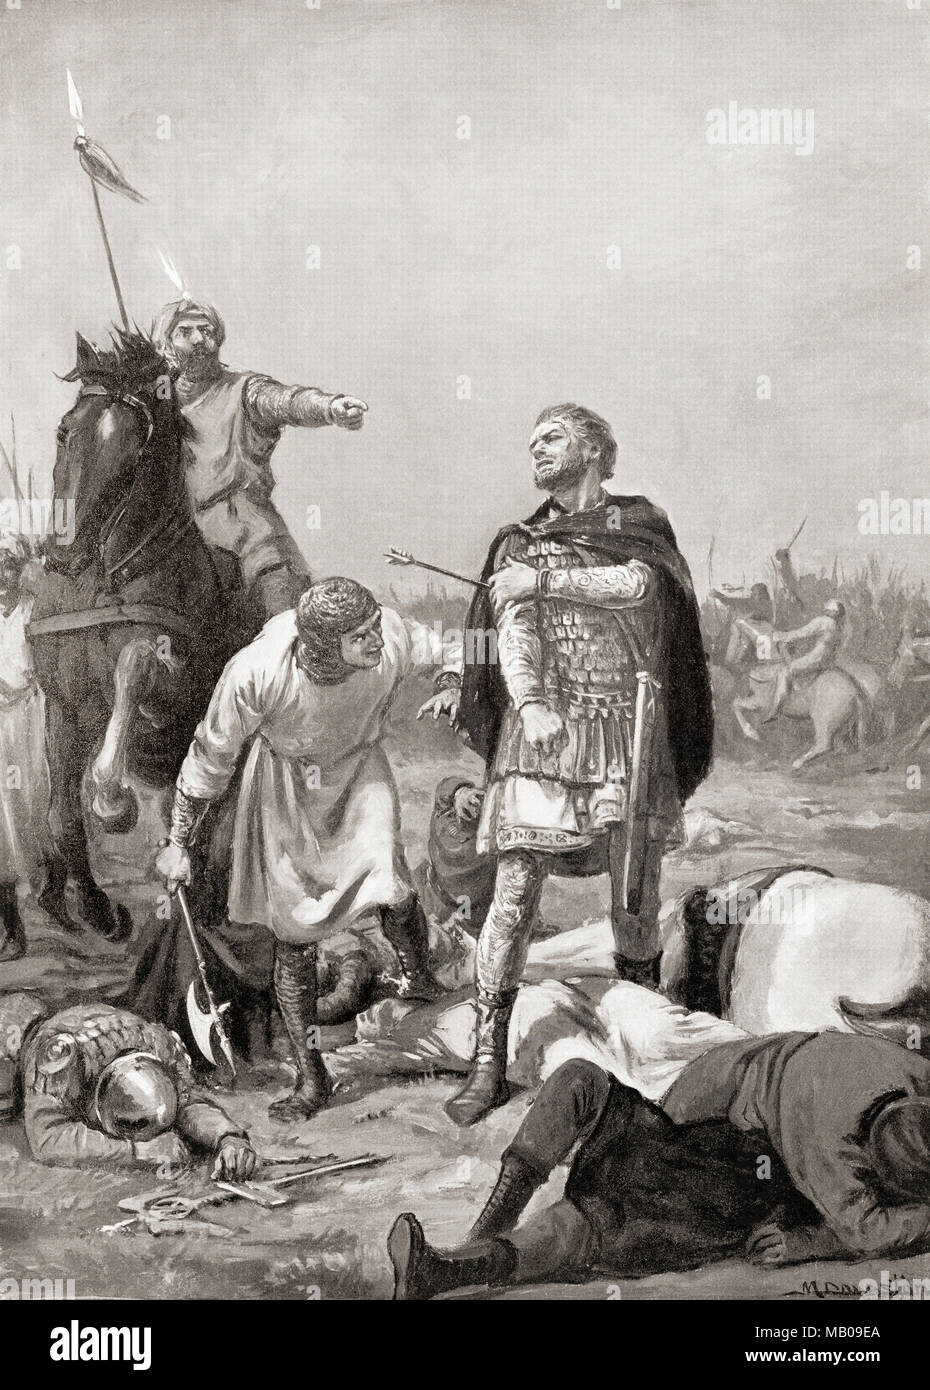 The capture of Diogenes at The Battle of Manzikert in 1071 by Alp Arslan. Alp Arslan, 1029 – 1072, real name Muhammad bin Dawud Chaghri.  Second Sultan of the Seljuk Empire.  Romanos IV Diogenes, aka Romanus IV.  Member of the Byzantine military aristocracy crowned Byzantine emperor.  After the painting by Margaret Dovaston, (1884-1954).   From Hutchinson's History of the Nations, published 1915 - Stock Image